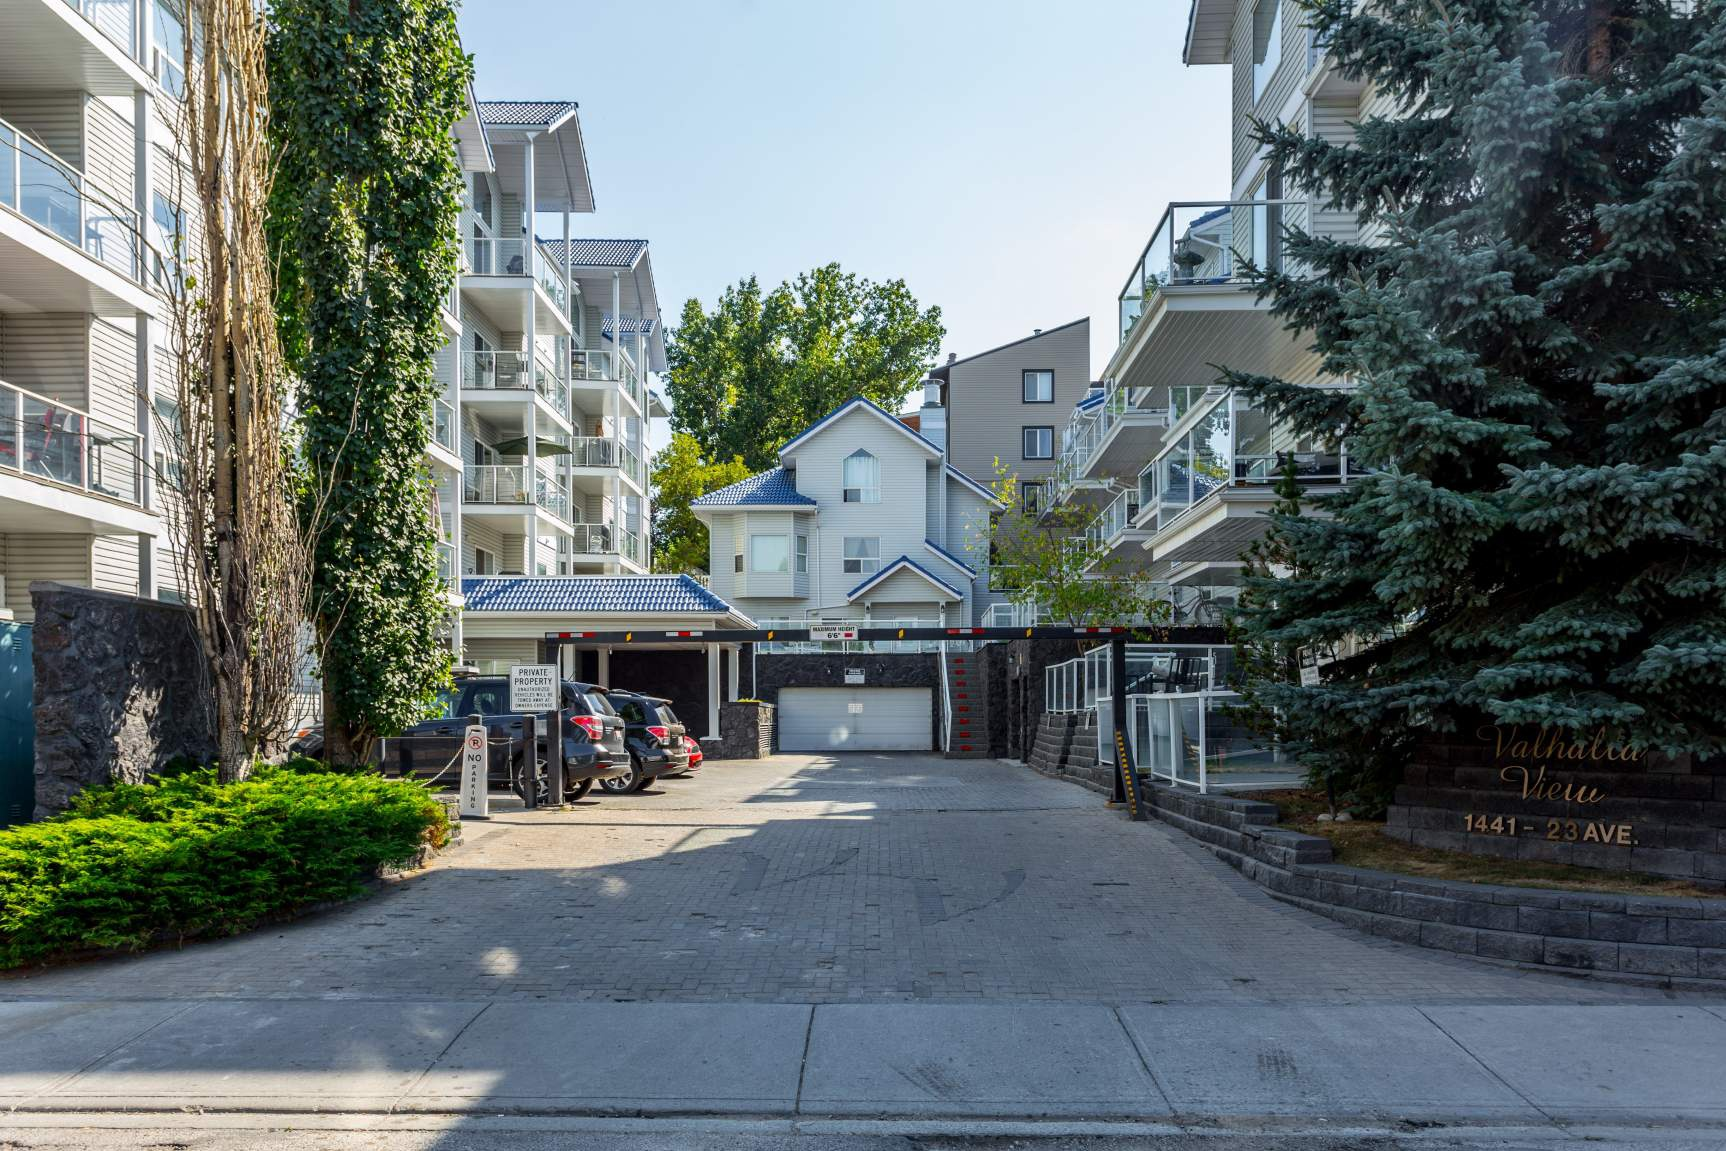 1441 23 Avenue Southwest in Calgary, AB is Now Available